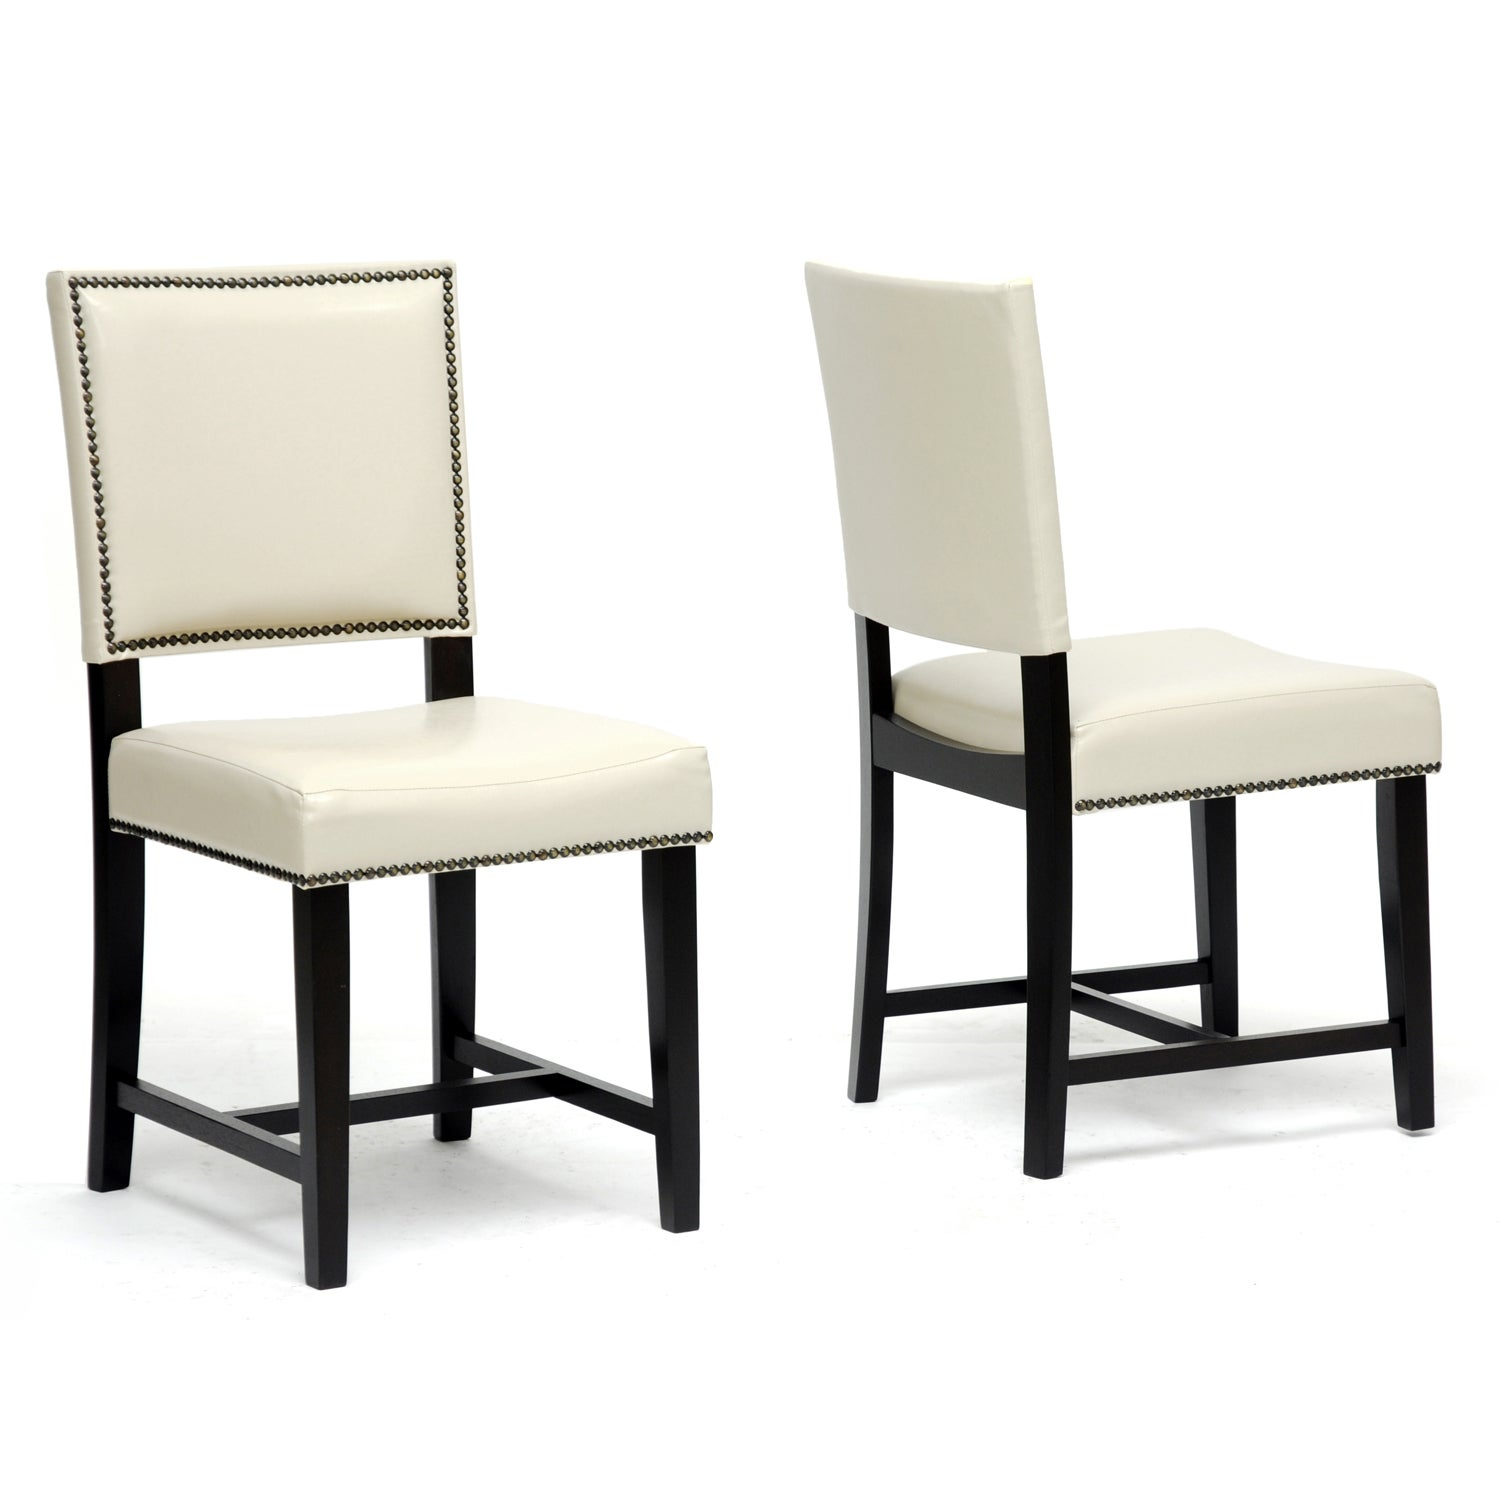 Baxton Studio Dining Chairs Overstock Shopping The  : Baxton Studio Nottingham Cream Faux Leather Modern Dining Chairs Set of 2 P14671324 from www.overstock.com size 1500 x 1500 jpeg 62kB